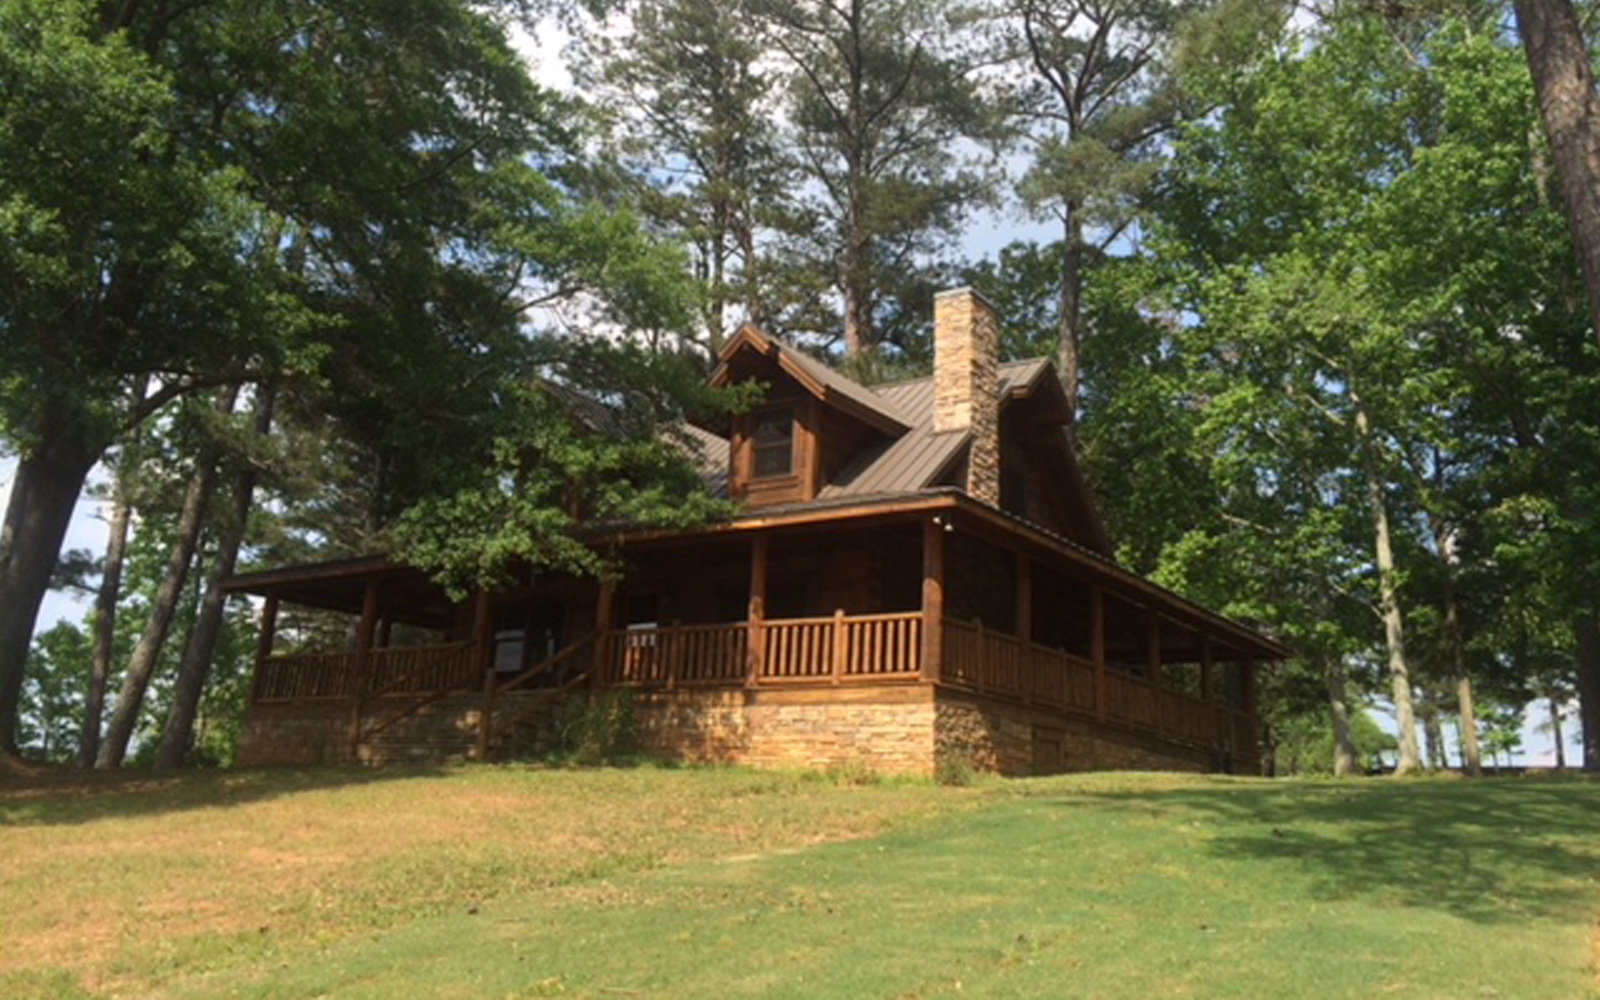 Tony Stark Cabin in Atlanta from Avenger's Endgame on Airbnb